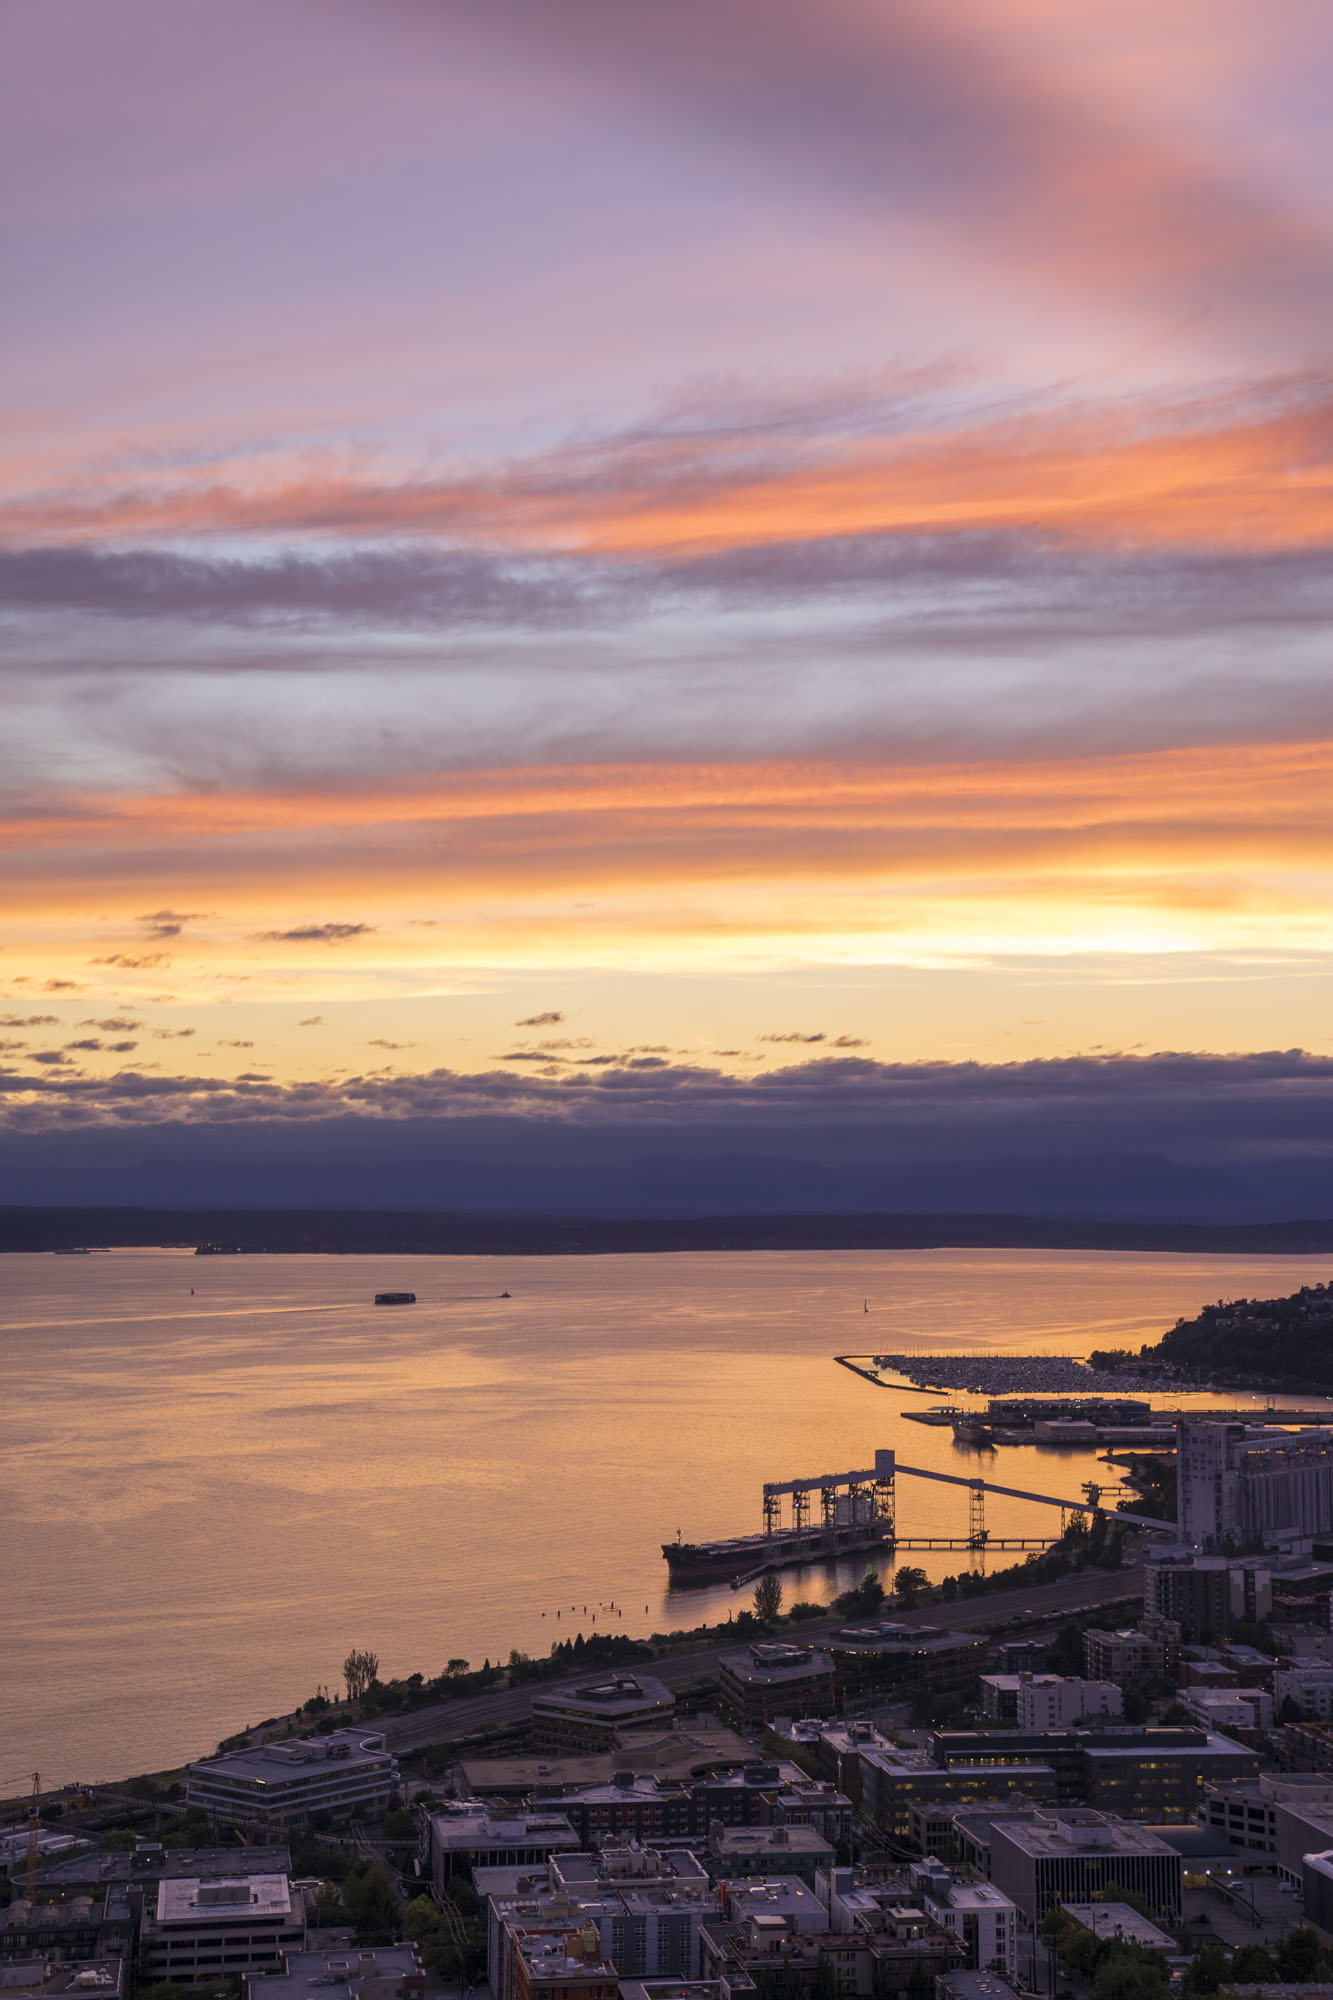 Seattle as the sunsets with bright oranges and purples.